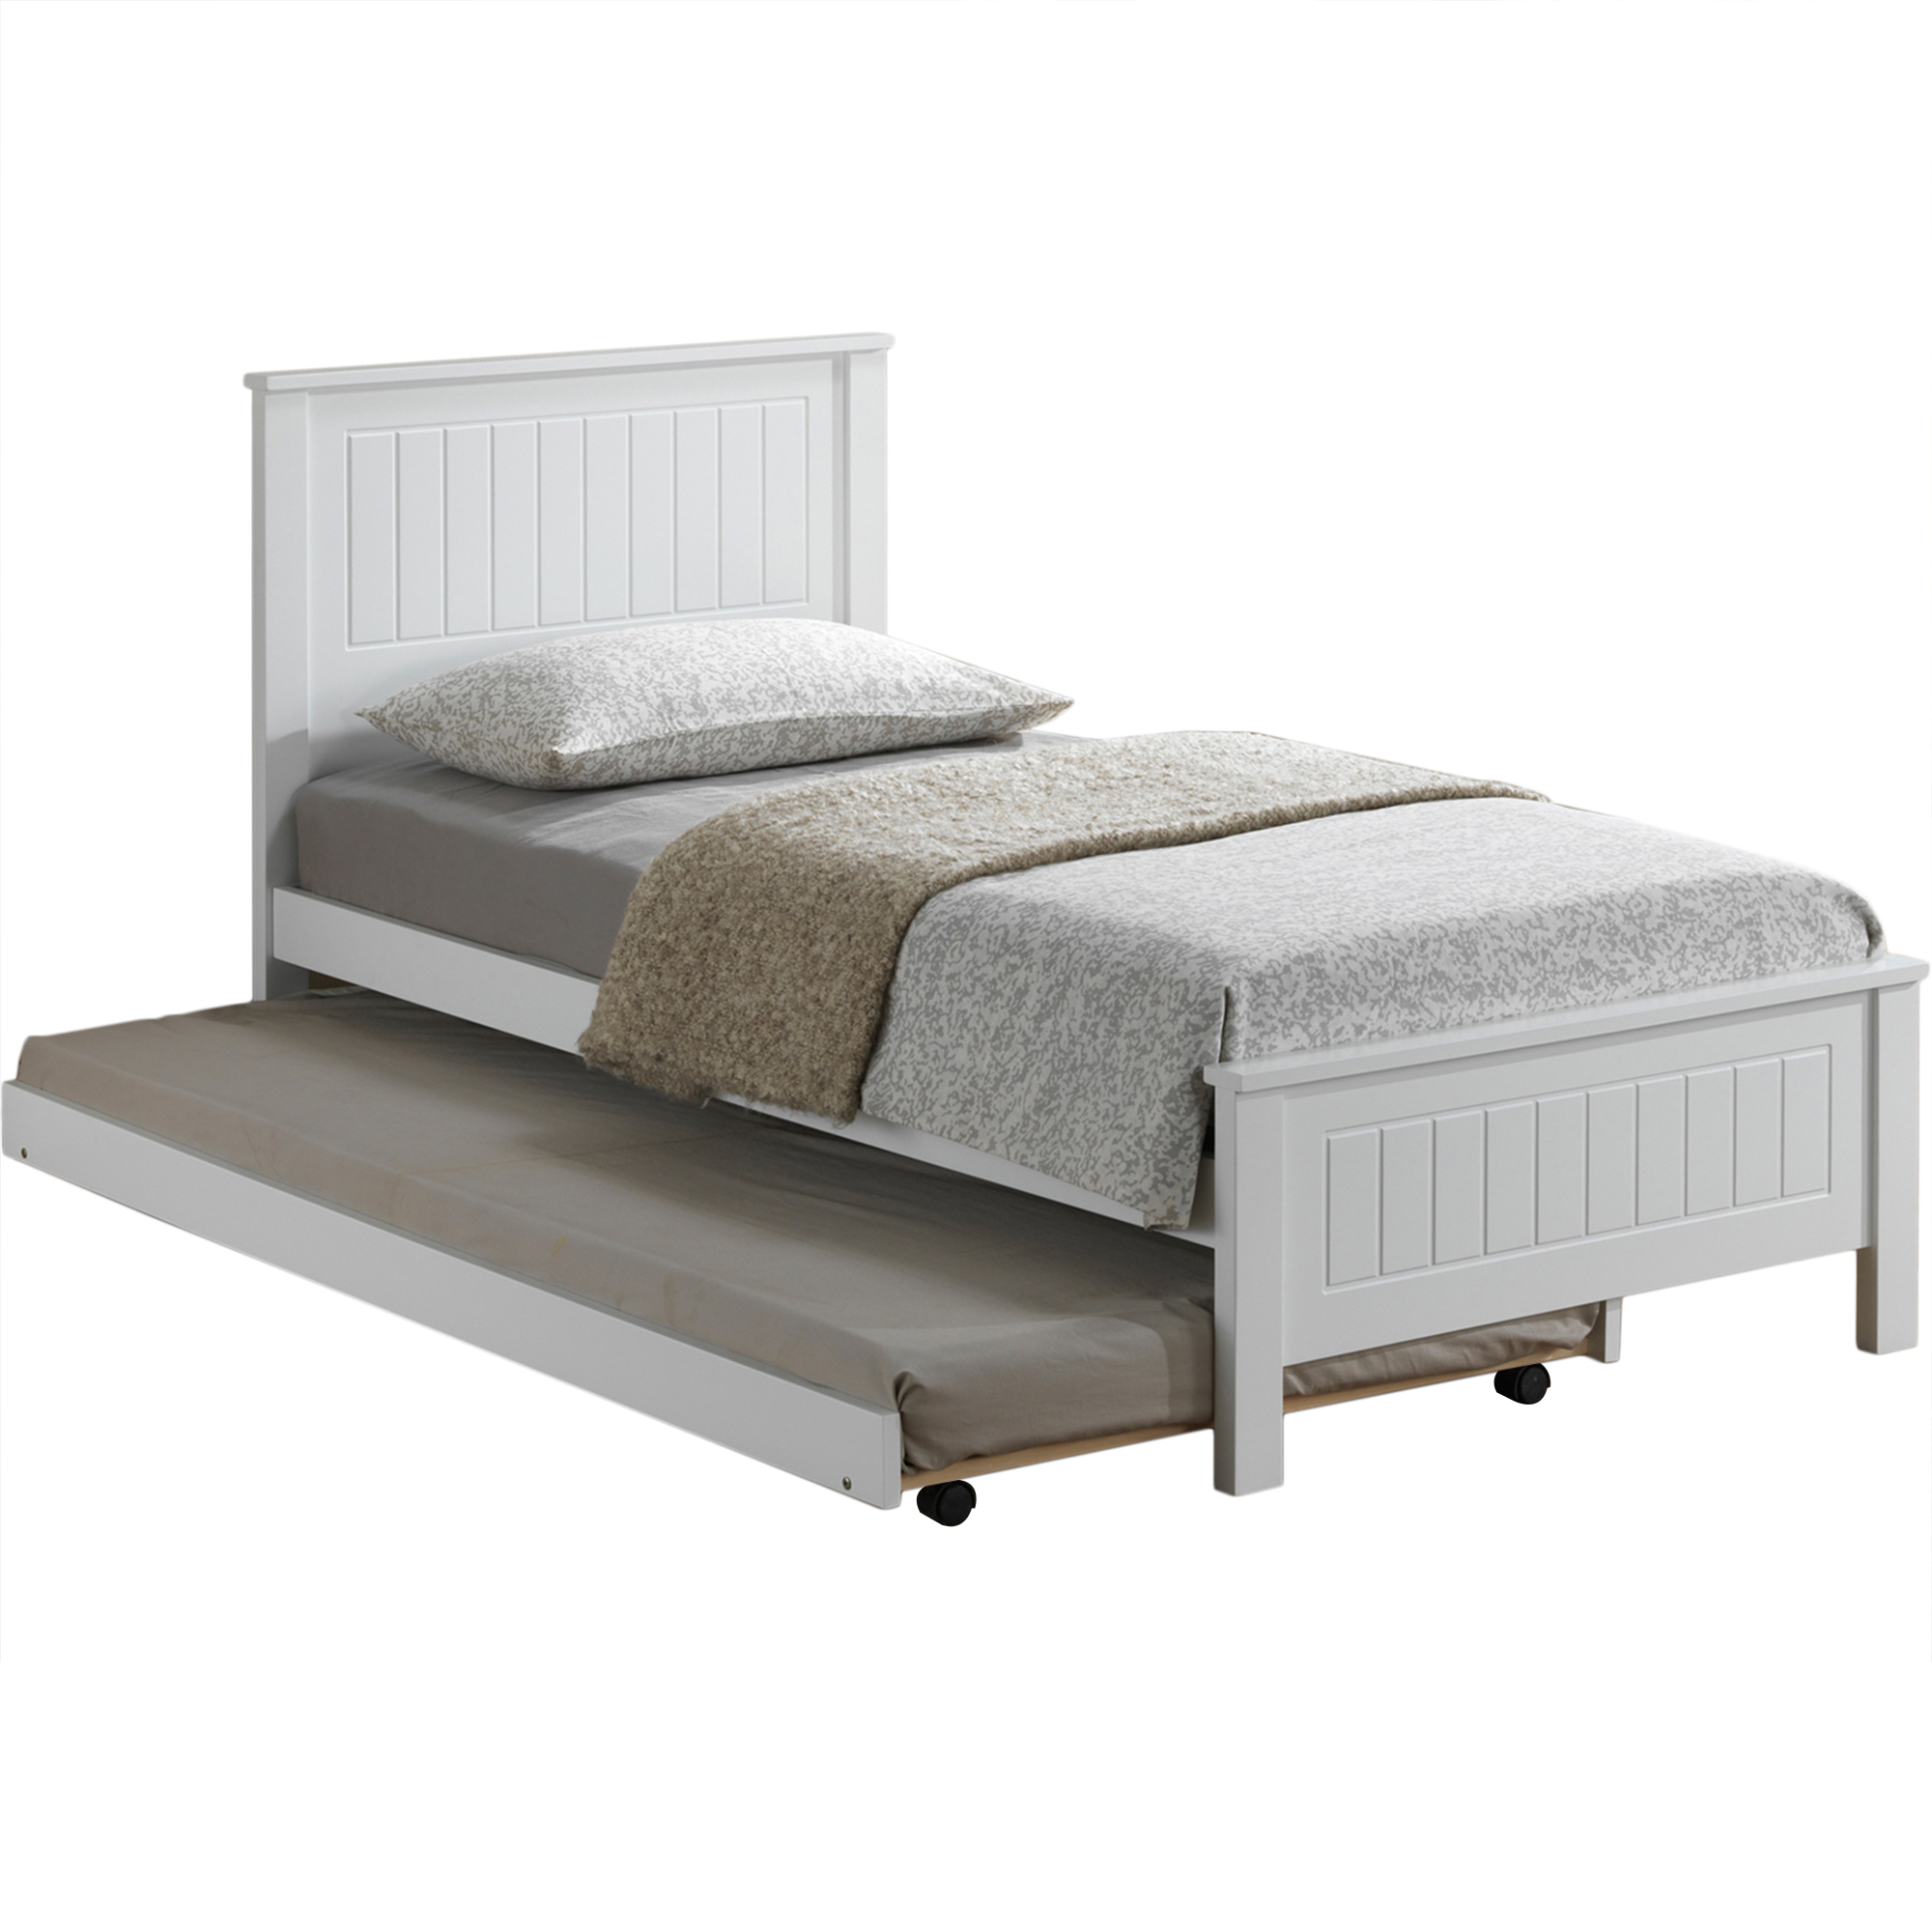 bevel opt land health solid single in out of furniture oak over bed beds blogalways for images all natural